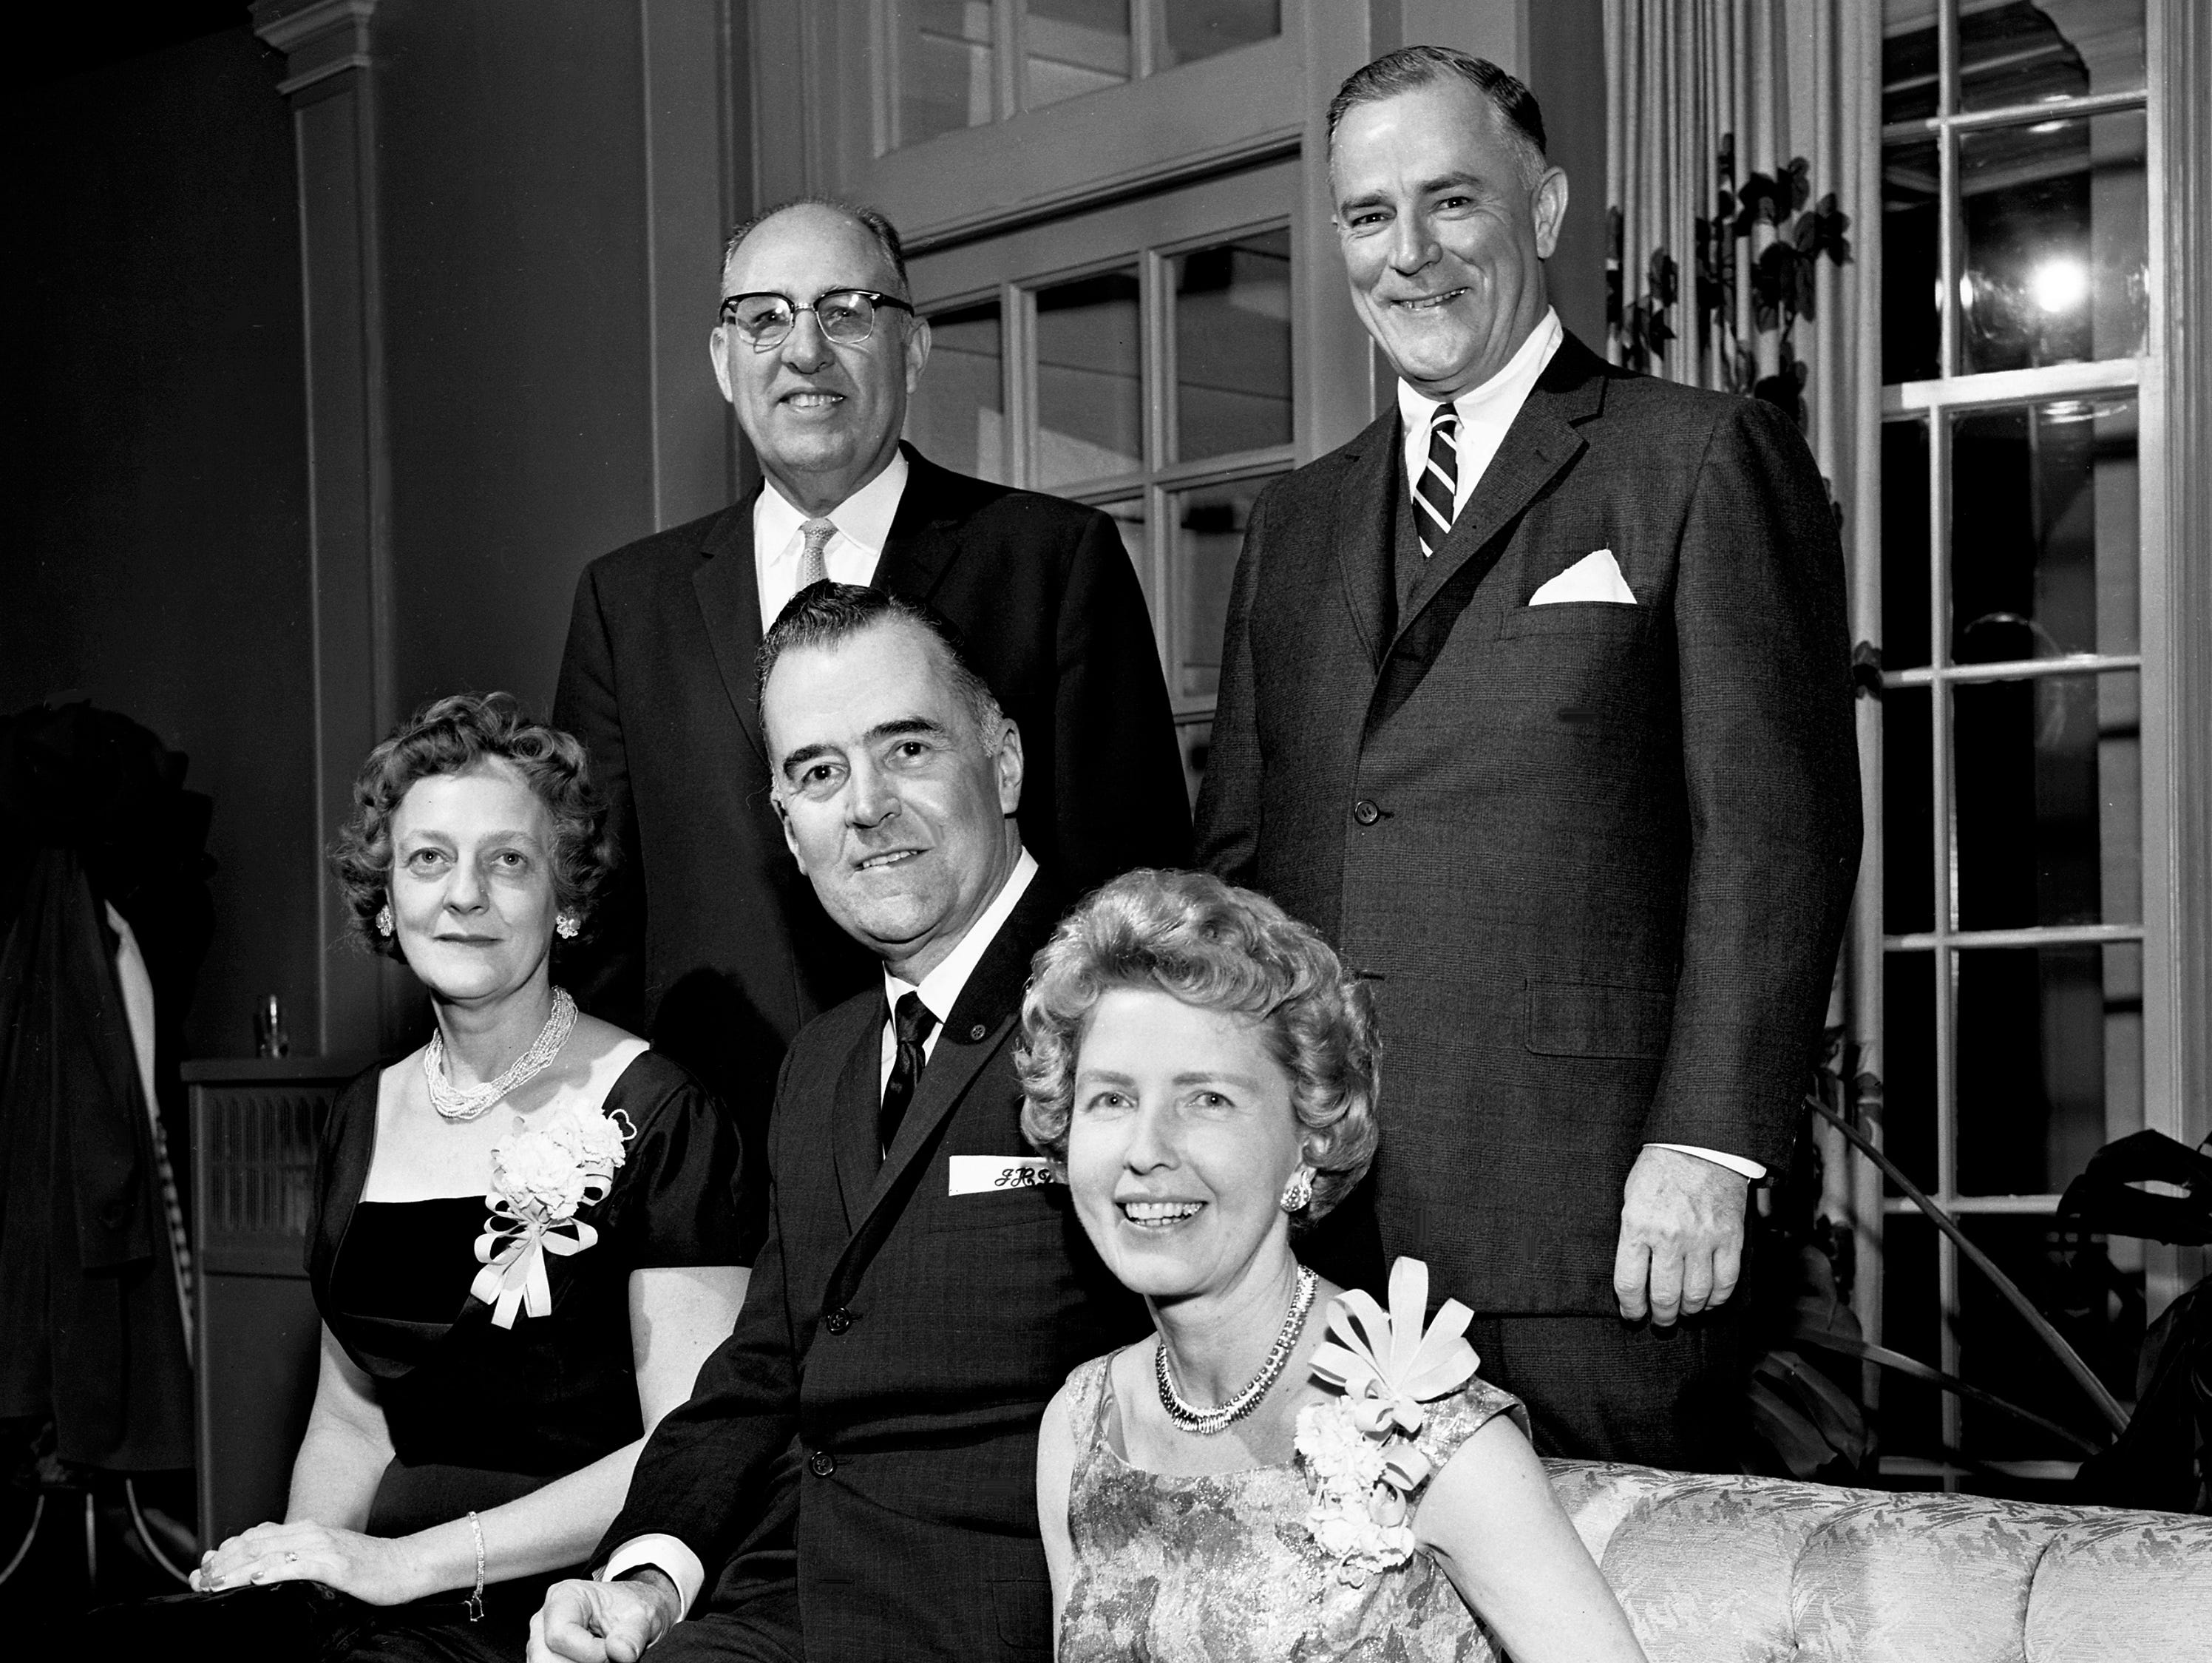 Members of the Rotary Club entertaining at a Valentine dinner and dance at Belle Meade Country Club on Feb. 14, 1961, are Mrs. P.D. Houston Jr., seated left, Mr. and Mrs. John Dubuisson, Wister Ligon, standing left, and P.D. Houston Jr.